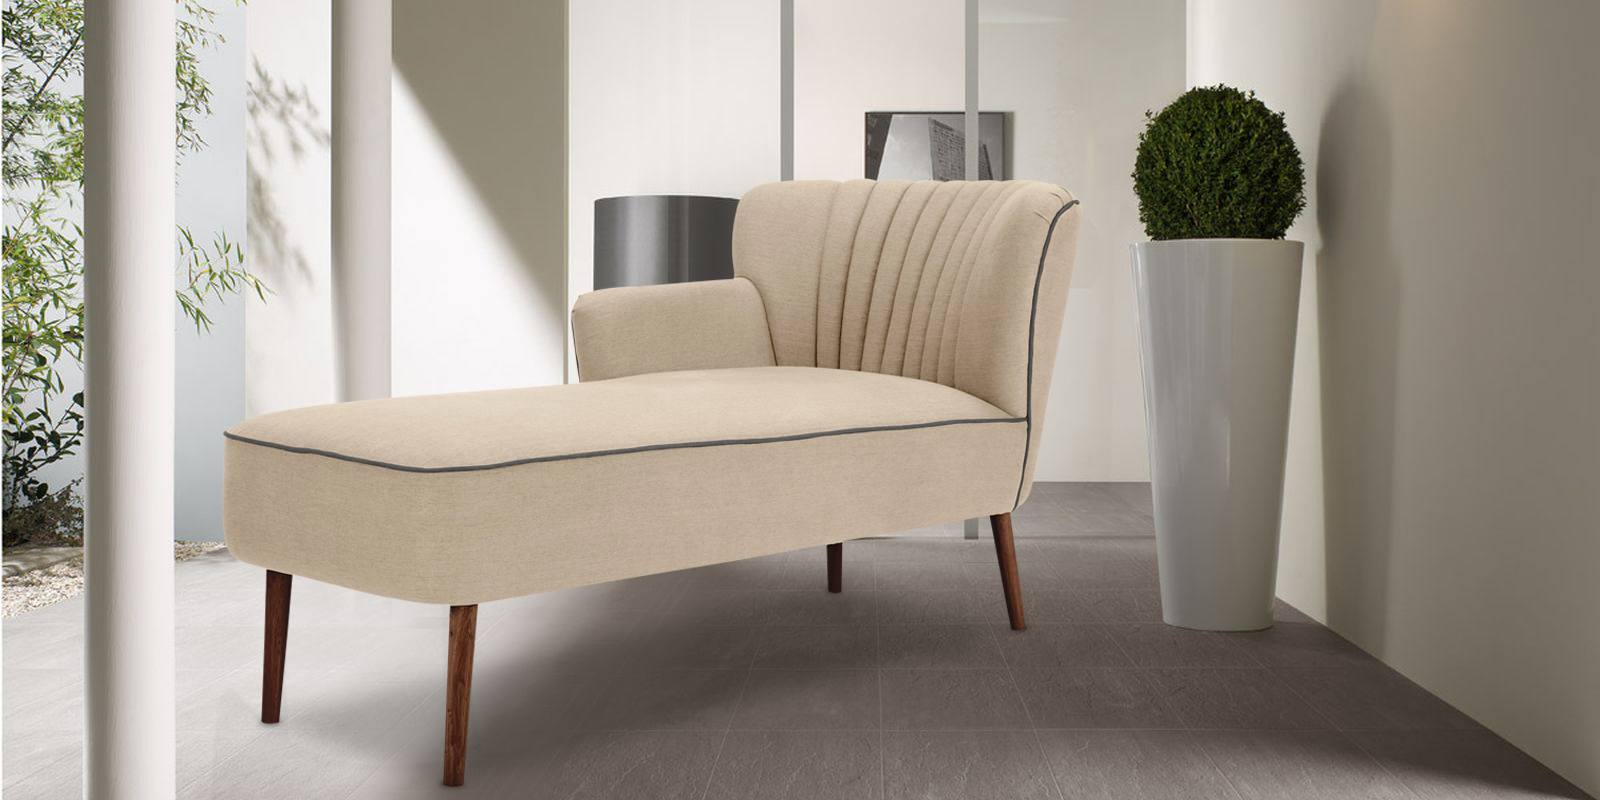 Glorious Comfort Chaise In Beige Colour